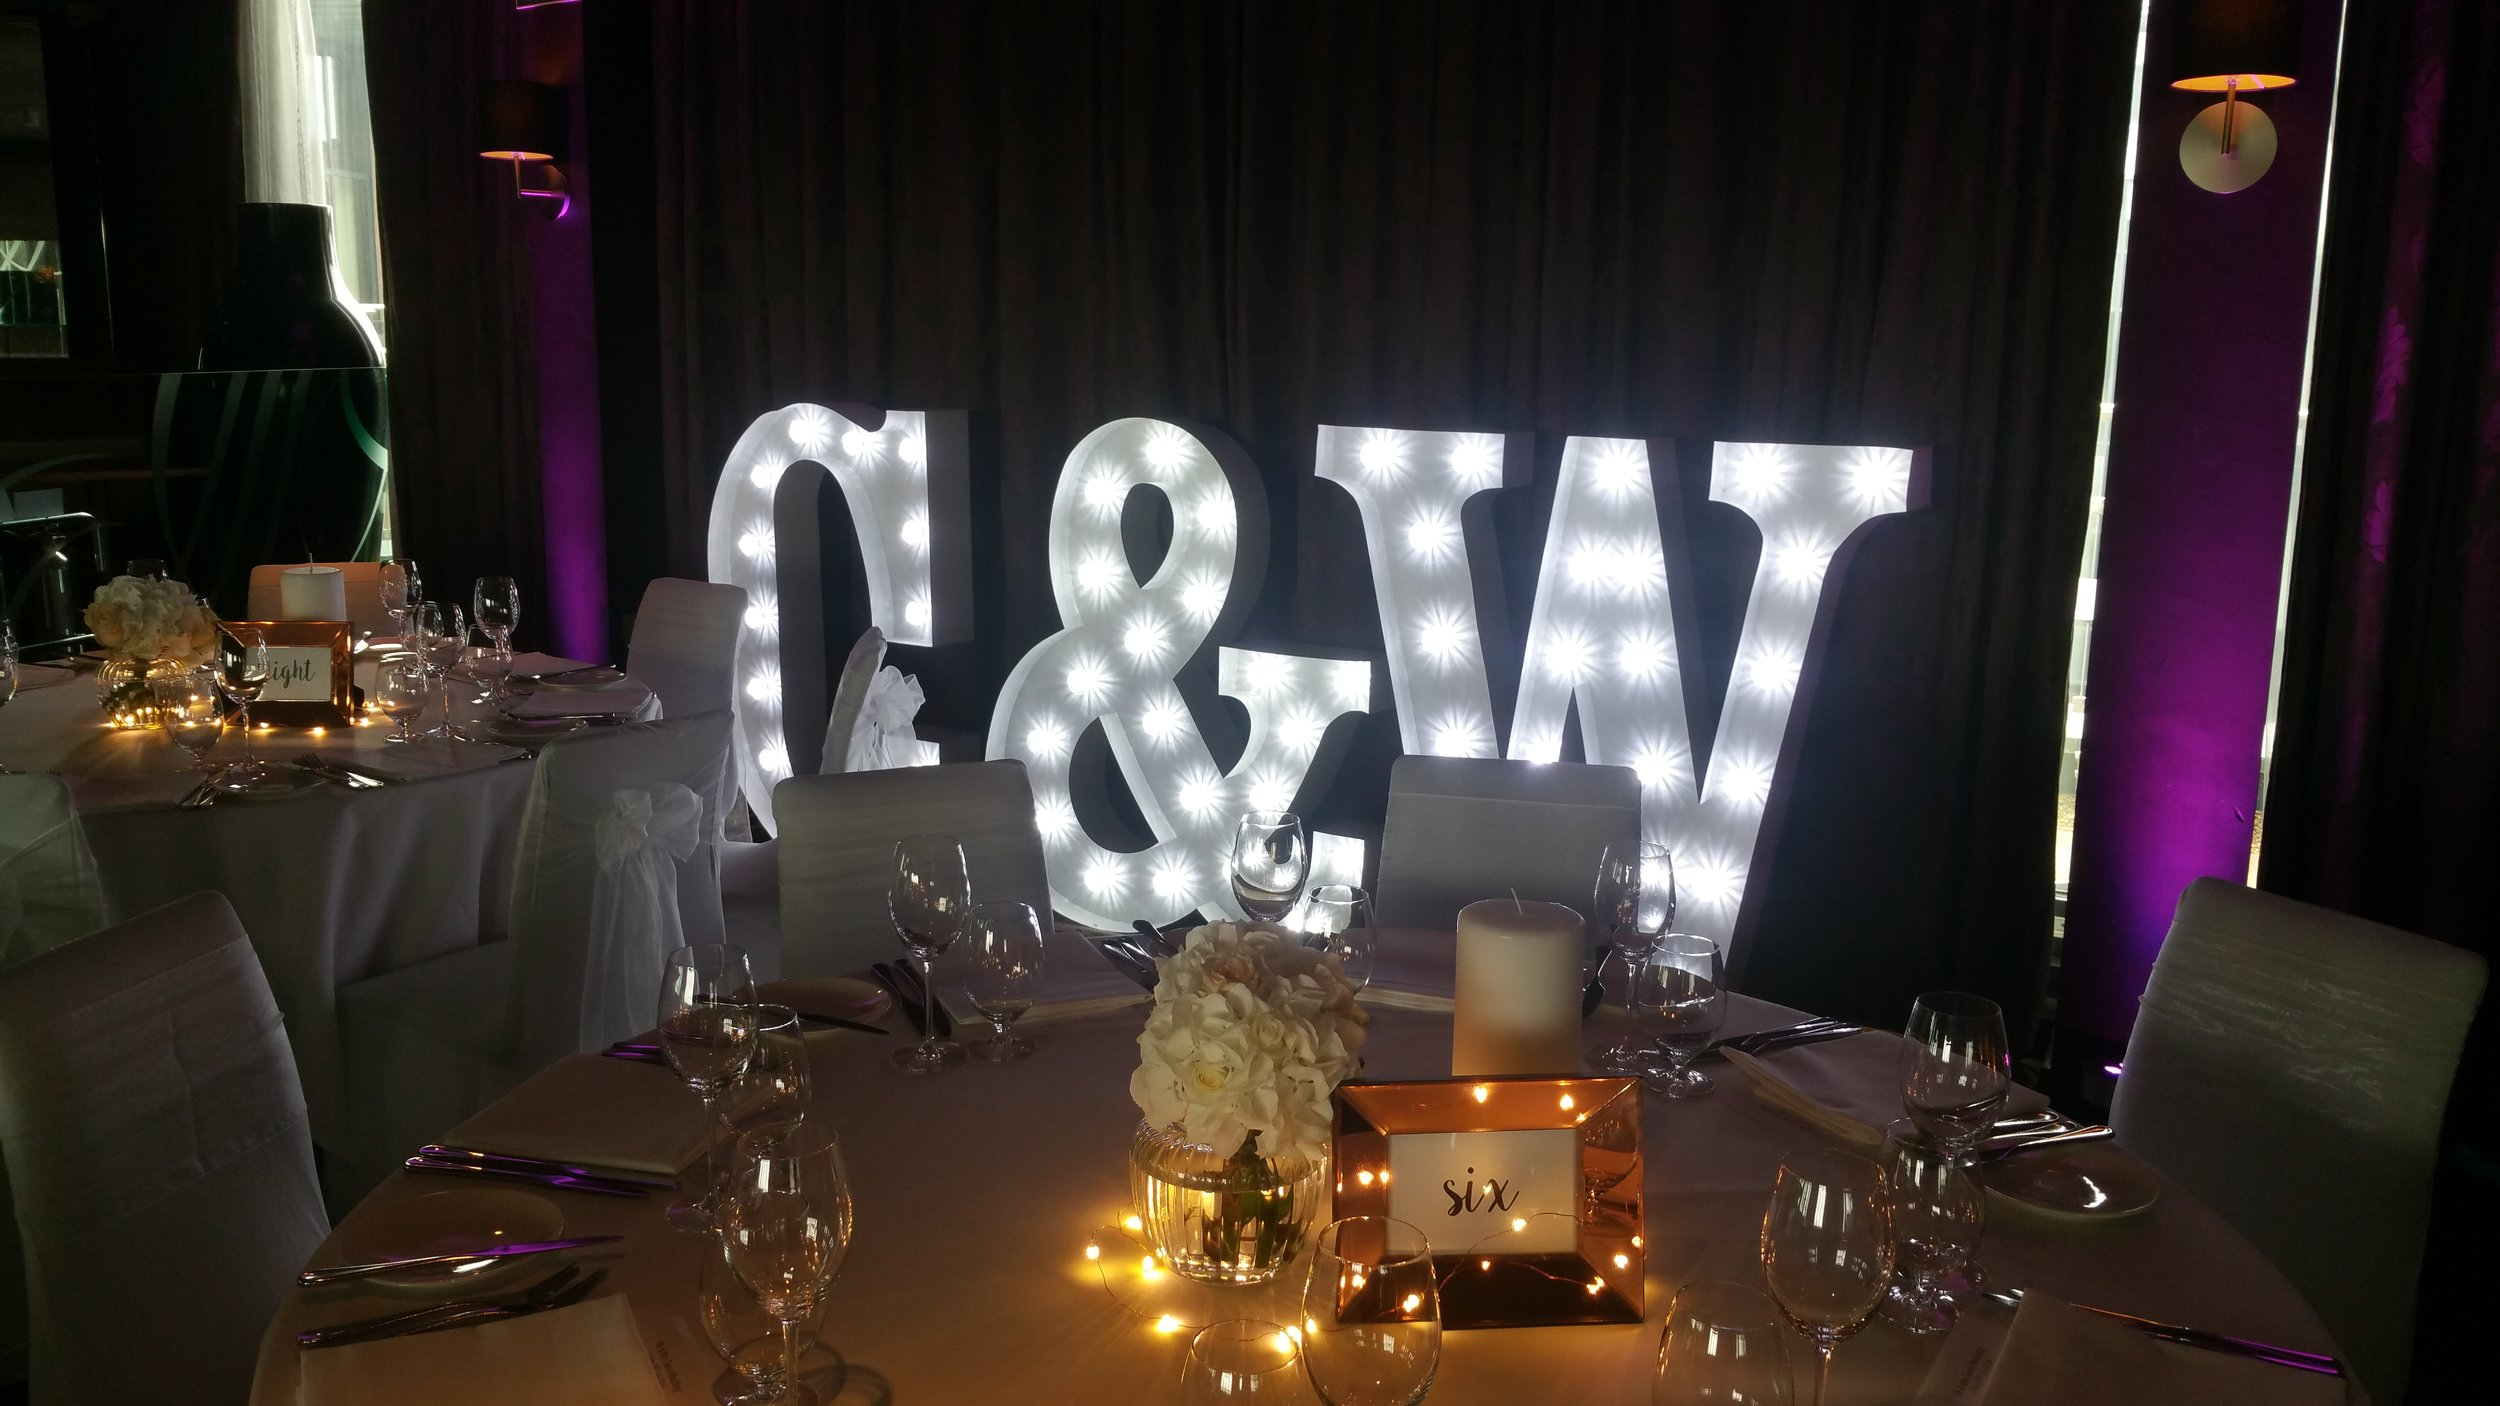 the wedding planner in your pocket - We can do as much or as little as you need in the build up to your big day - and if you book our